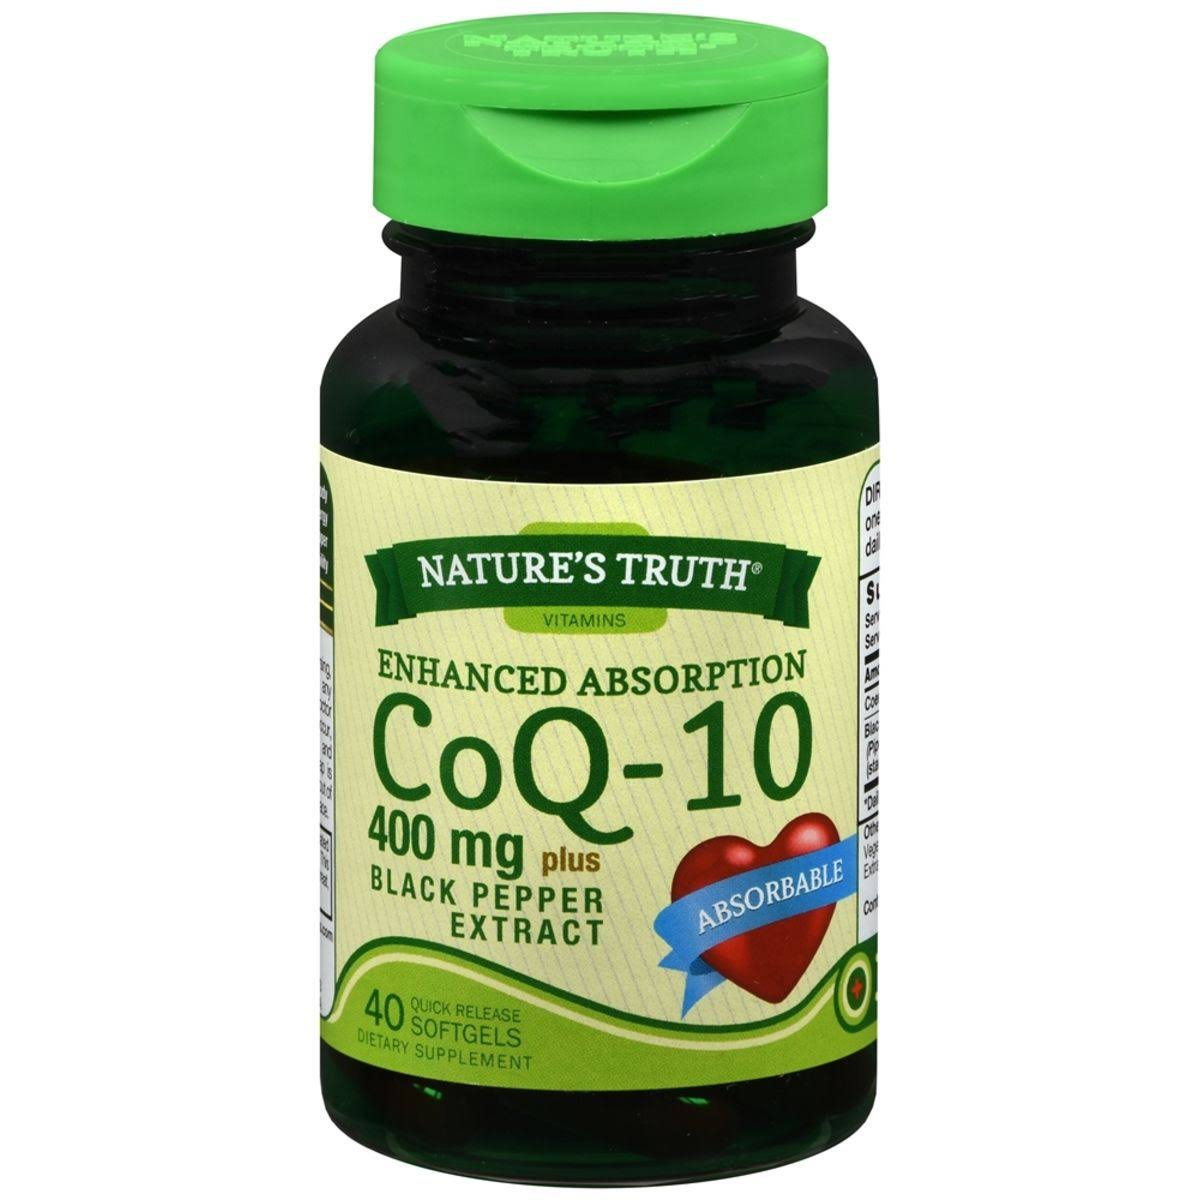 Nature's Truth CoQ-10 400 mg Plus Black Pepper Extract Dietary Supplement, 40 ct